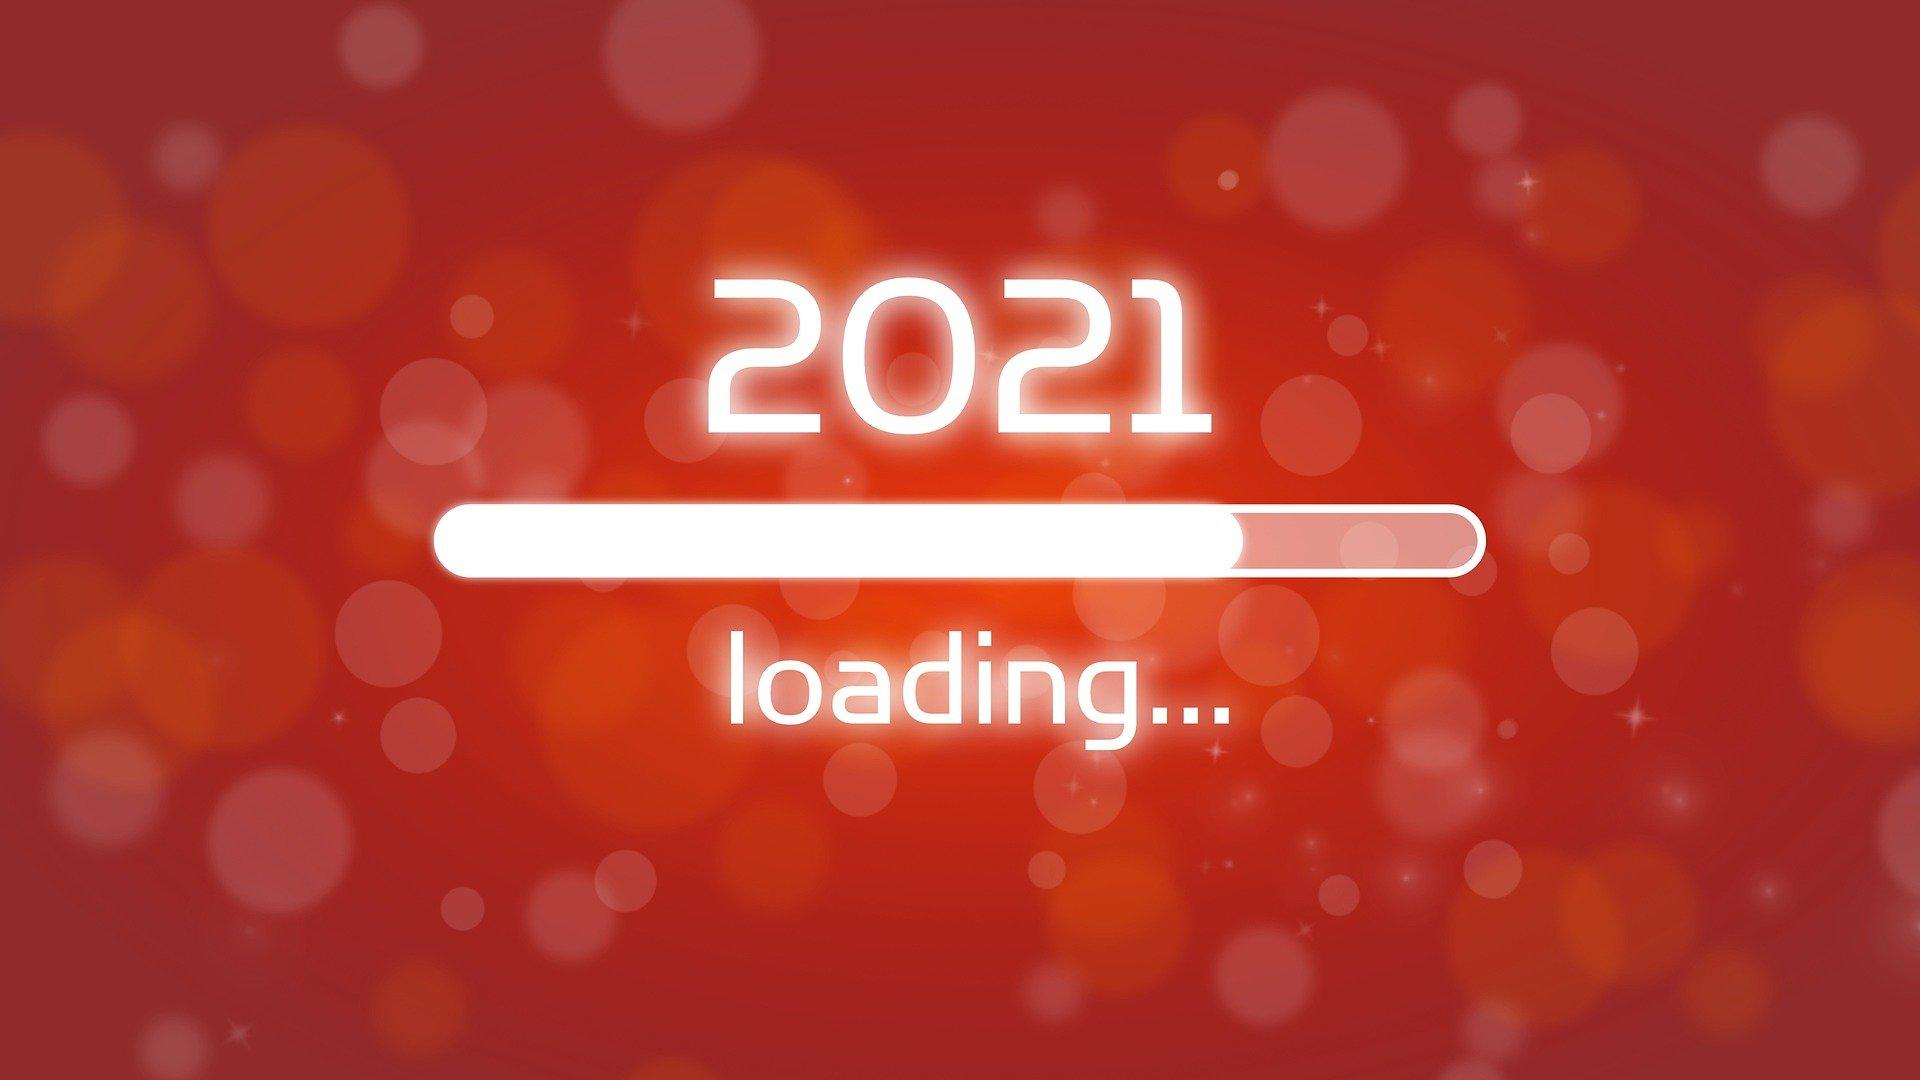 Stop waiting for 2020 to end and start 2021 now!